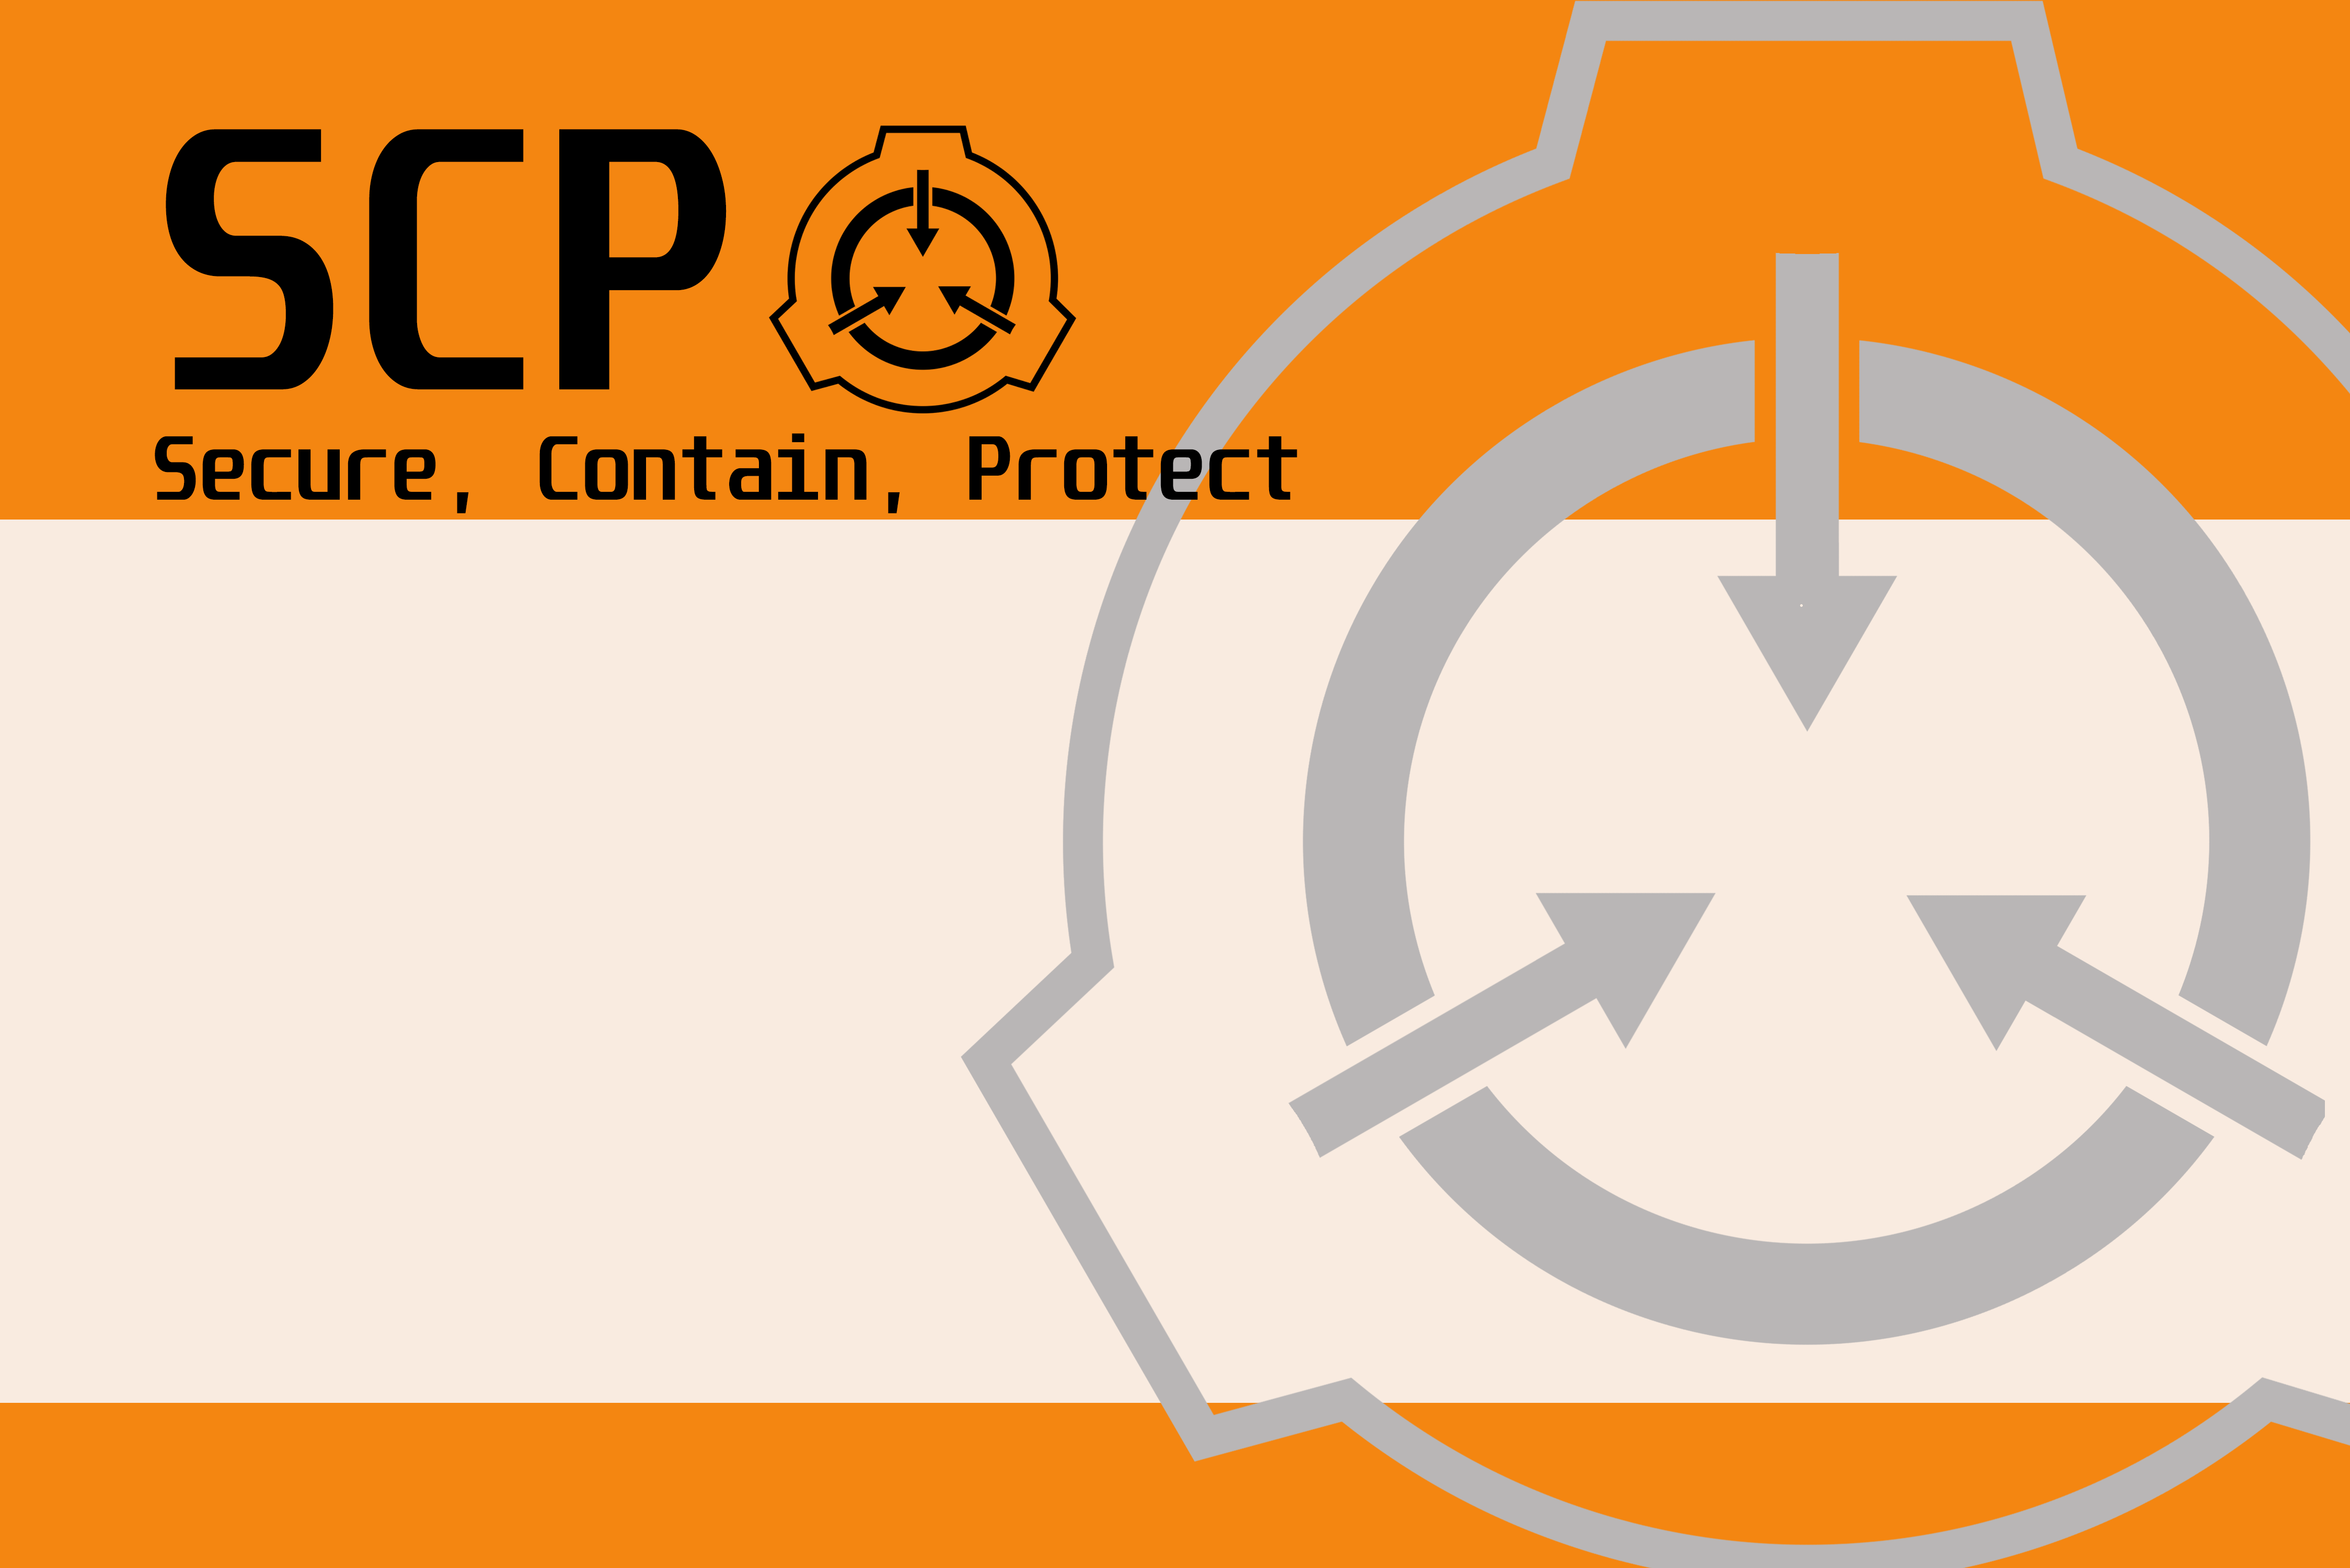 SCP-Ccard-Orange-01.png